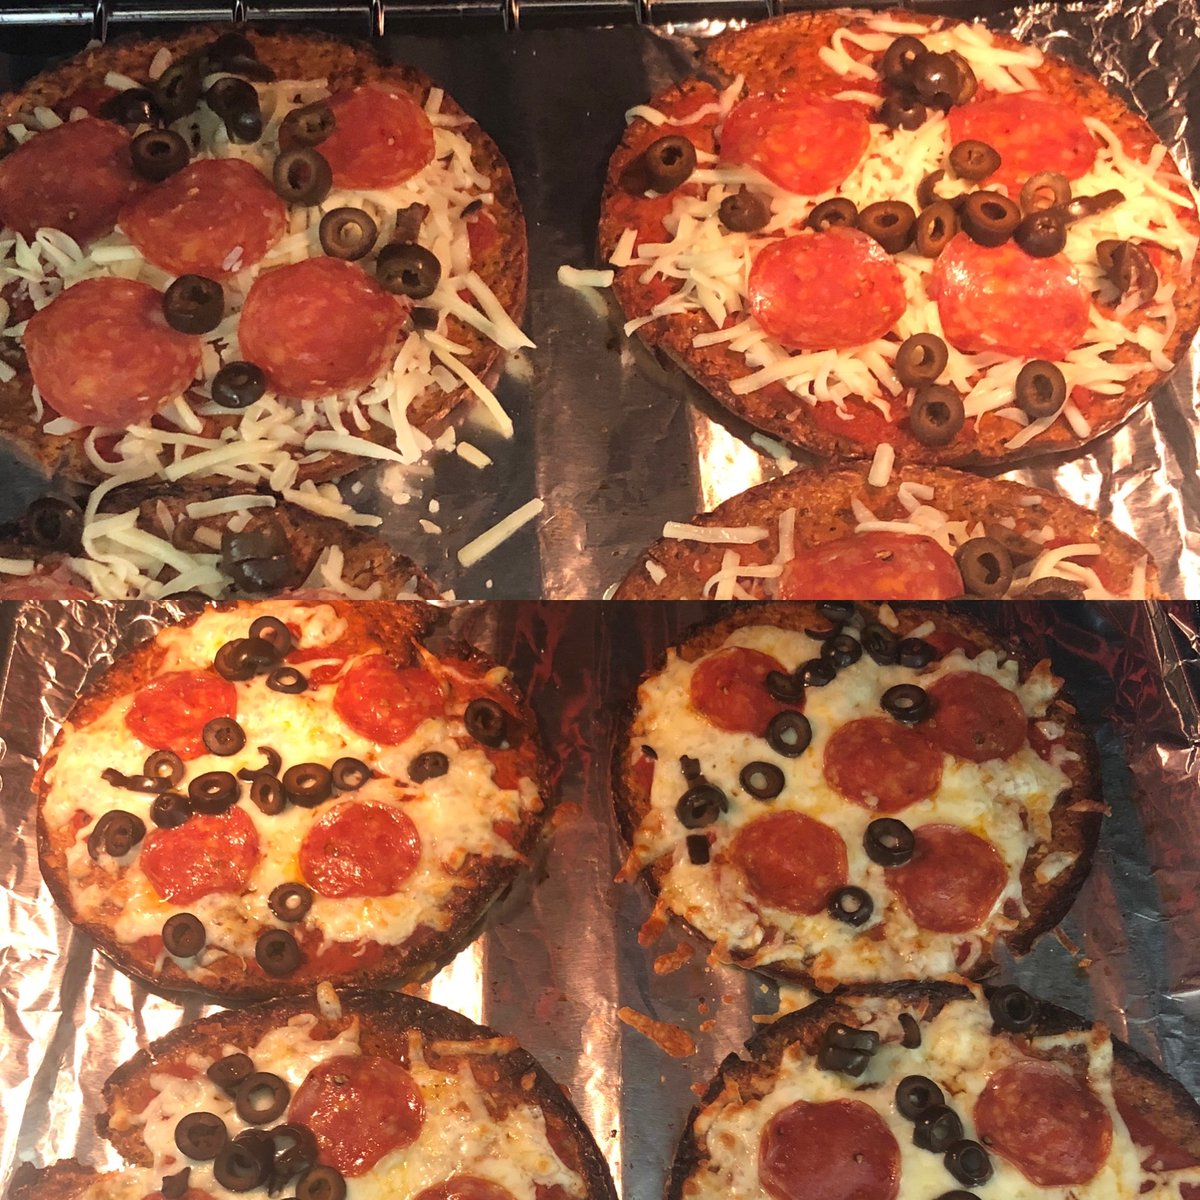 Low Carb?  Using cauliflower to make everything from pizza crust, bread to oatmeal helps add this veggie to your diet.   Cruciferous veggies like cauliflower or broccoli increases glutathione - the master antioxidant of the body.   Here are cauliflower crust pizzas I made! :) https://t.co/LMFnBogHG8